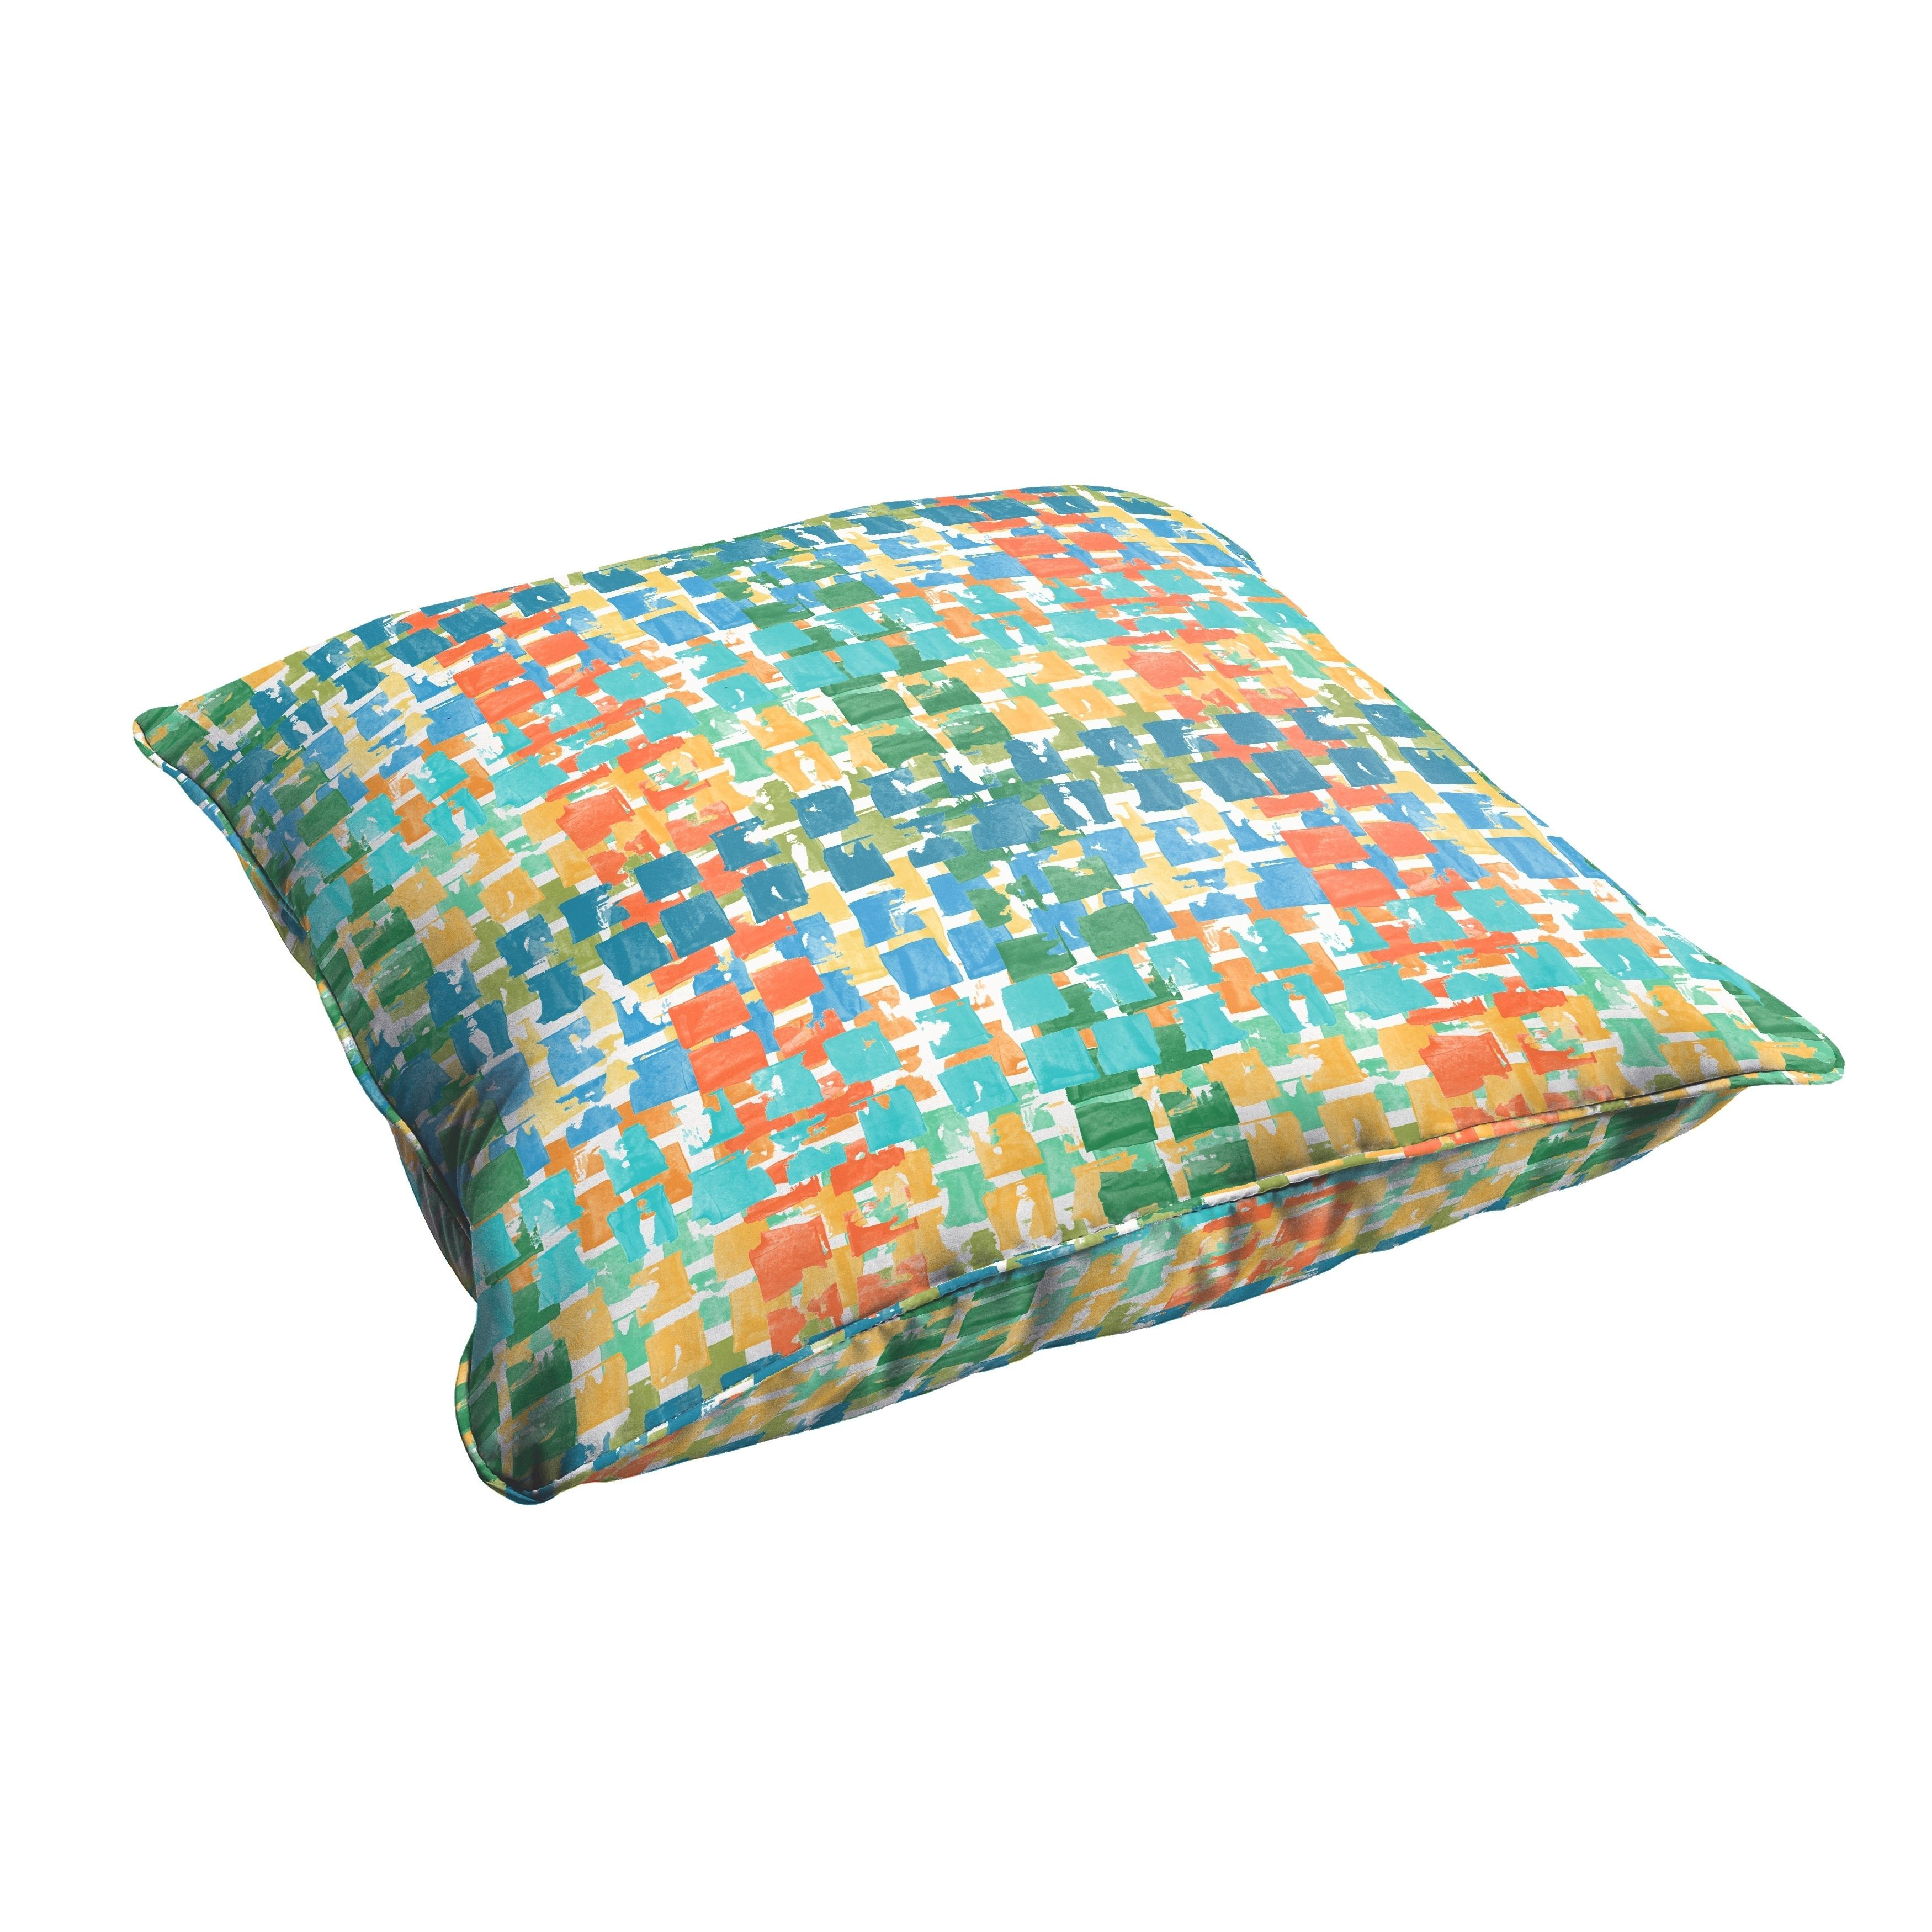 Selena Grey Gold Squares 26 x 26-inch Indoor/ Outdoor Corded Edge Floor Pillow (OSPS4785), Blue (Fabric), Outdoor Cushion